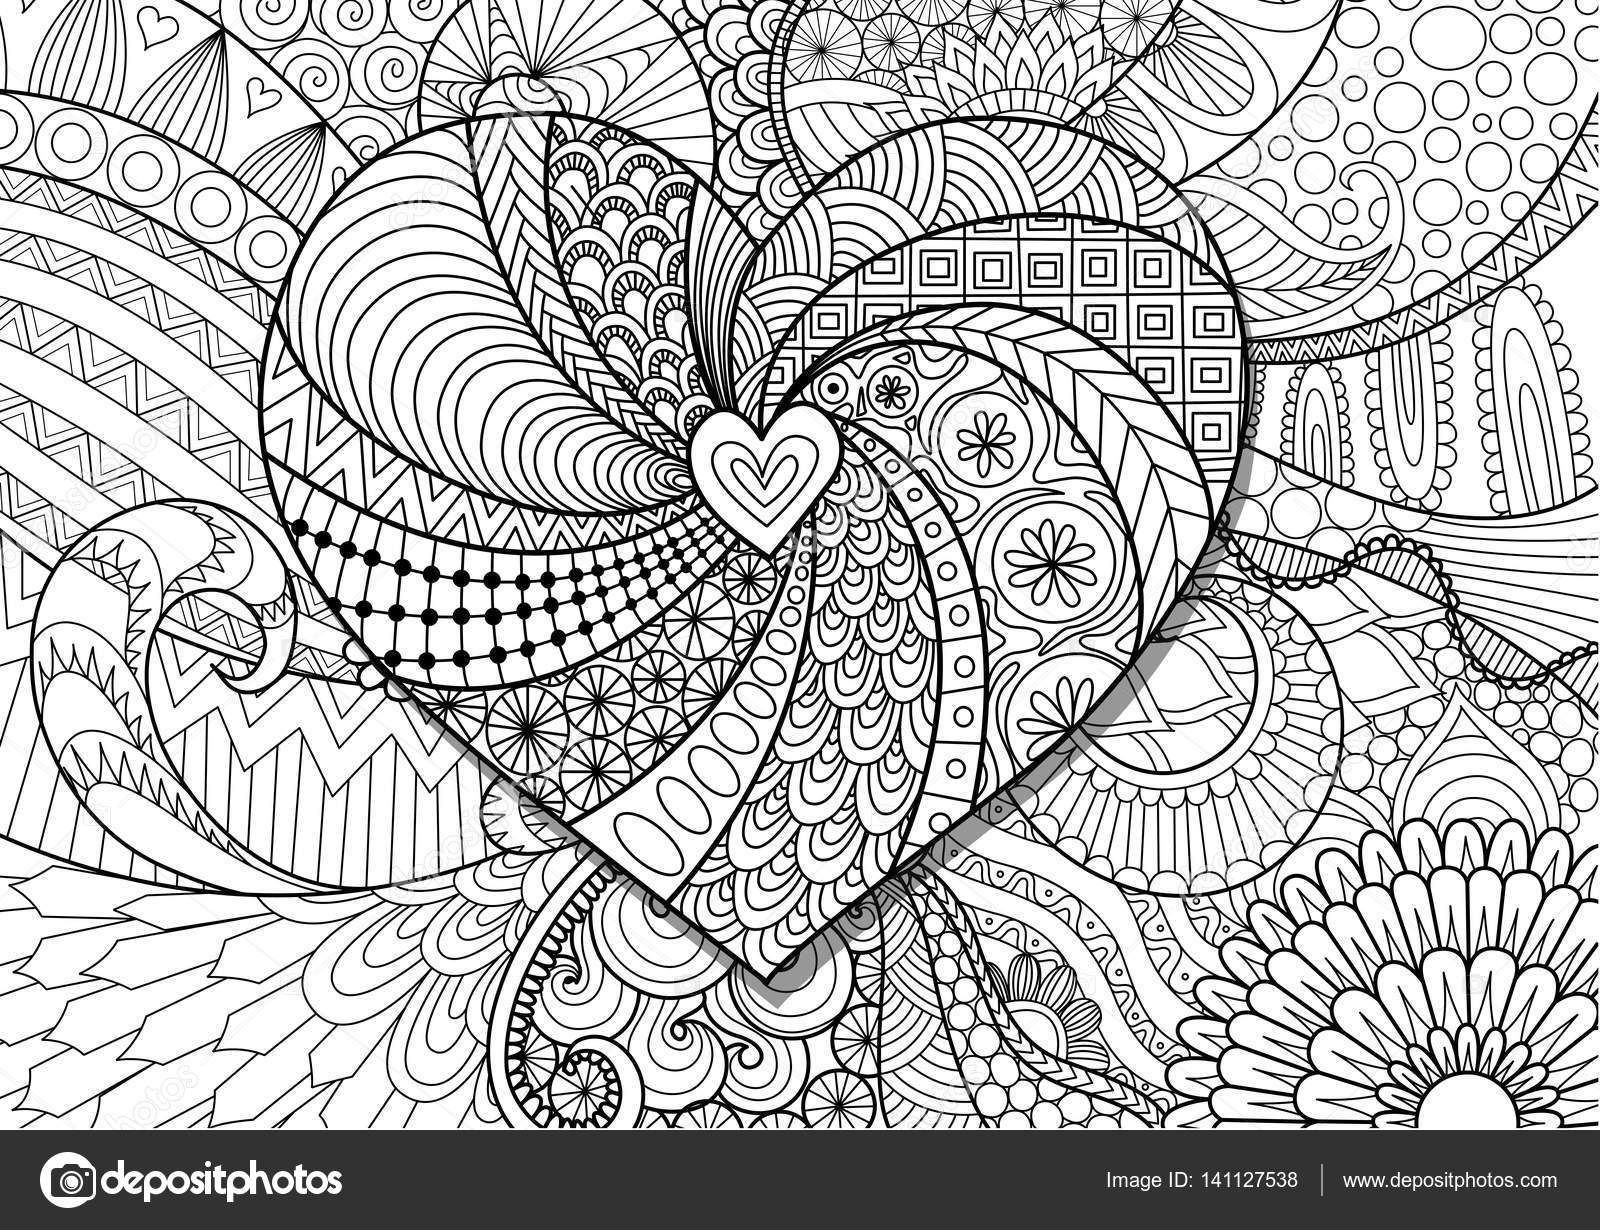 Kalp Boyama Kitabi Sayfalari Sevgililer Gunu Karti Ve Dugun Davetiyesi Yetiskin Icin Cic Love Coloring Pages Adult Coloring Mandalas Adult Coloring Book Pages